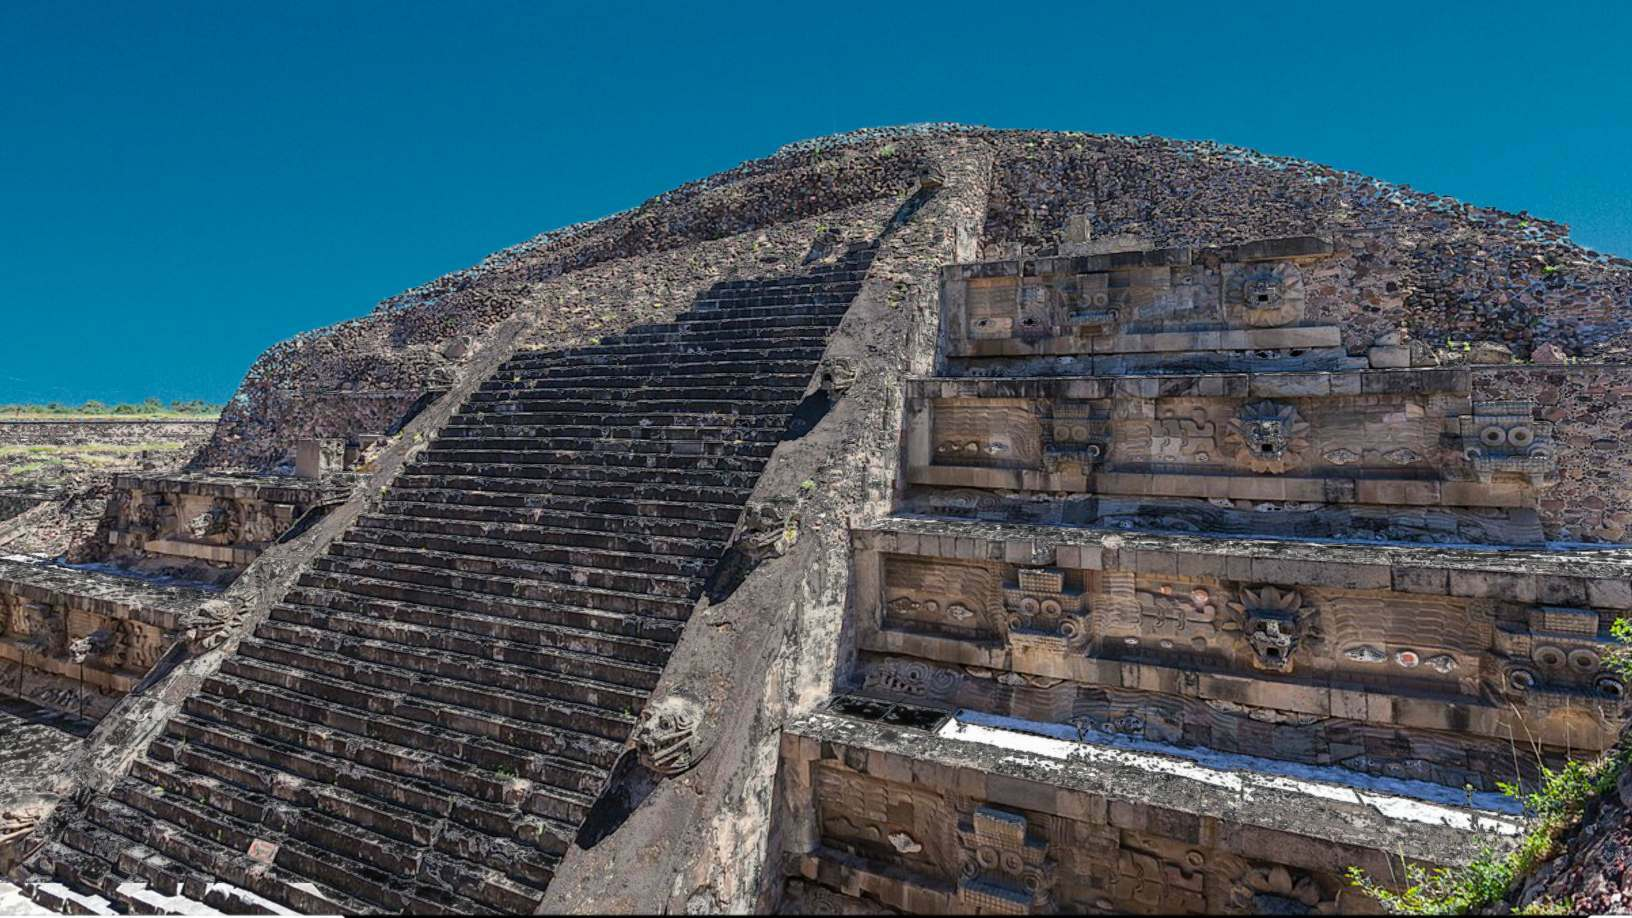 Were the Mayans visited by ancient astronauts? 5